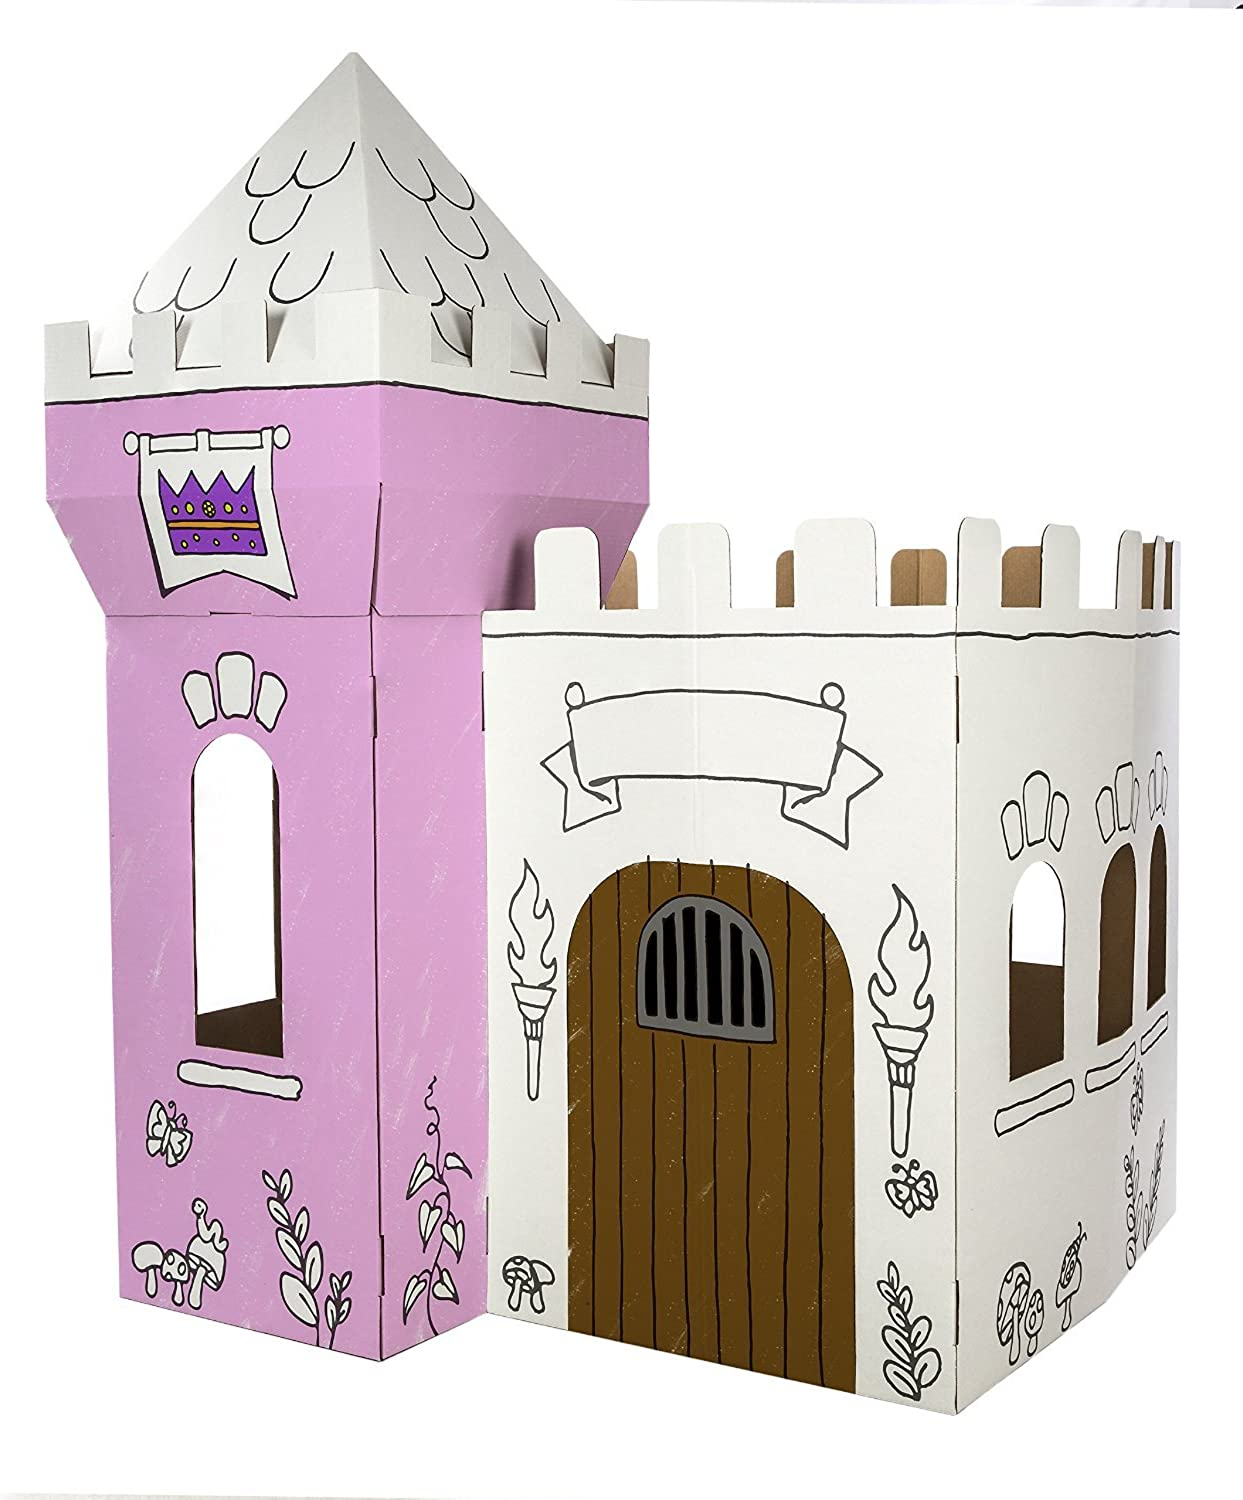 Box Creations Corrugated Castle - Markers Included by Box Creations B0040RH656 Überlegene Qualität  | Luxus